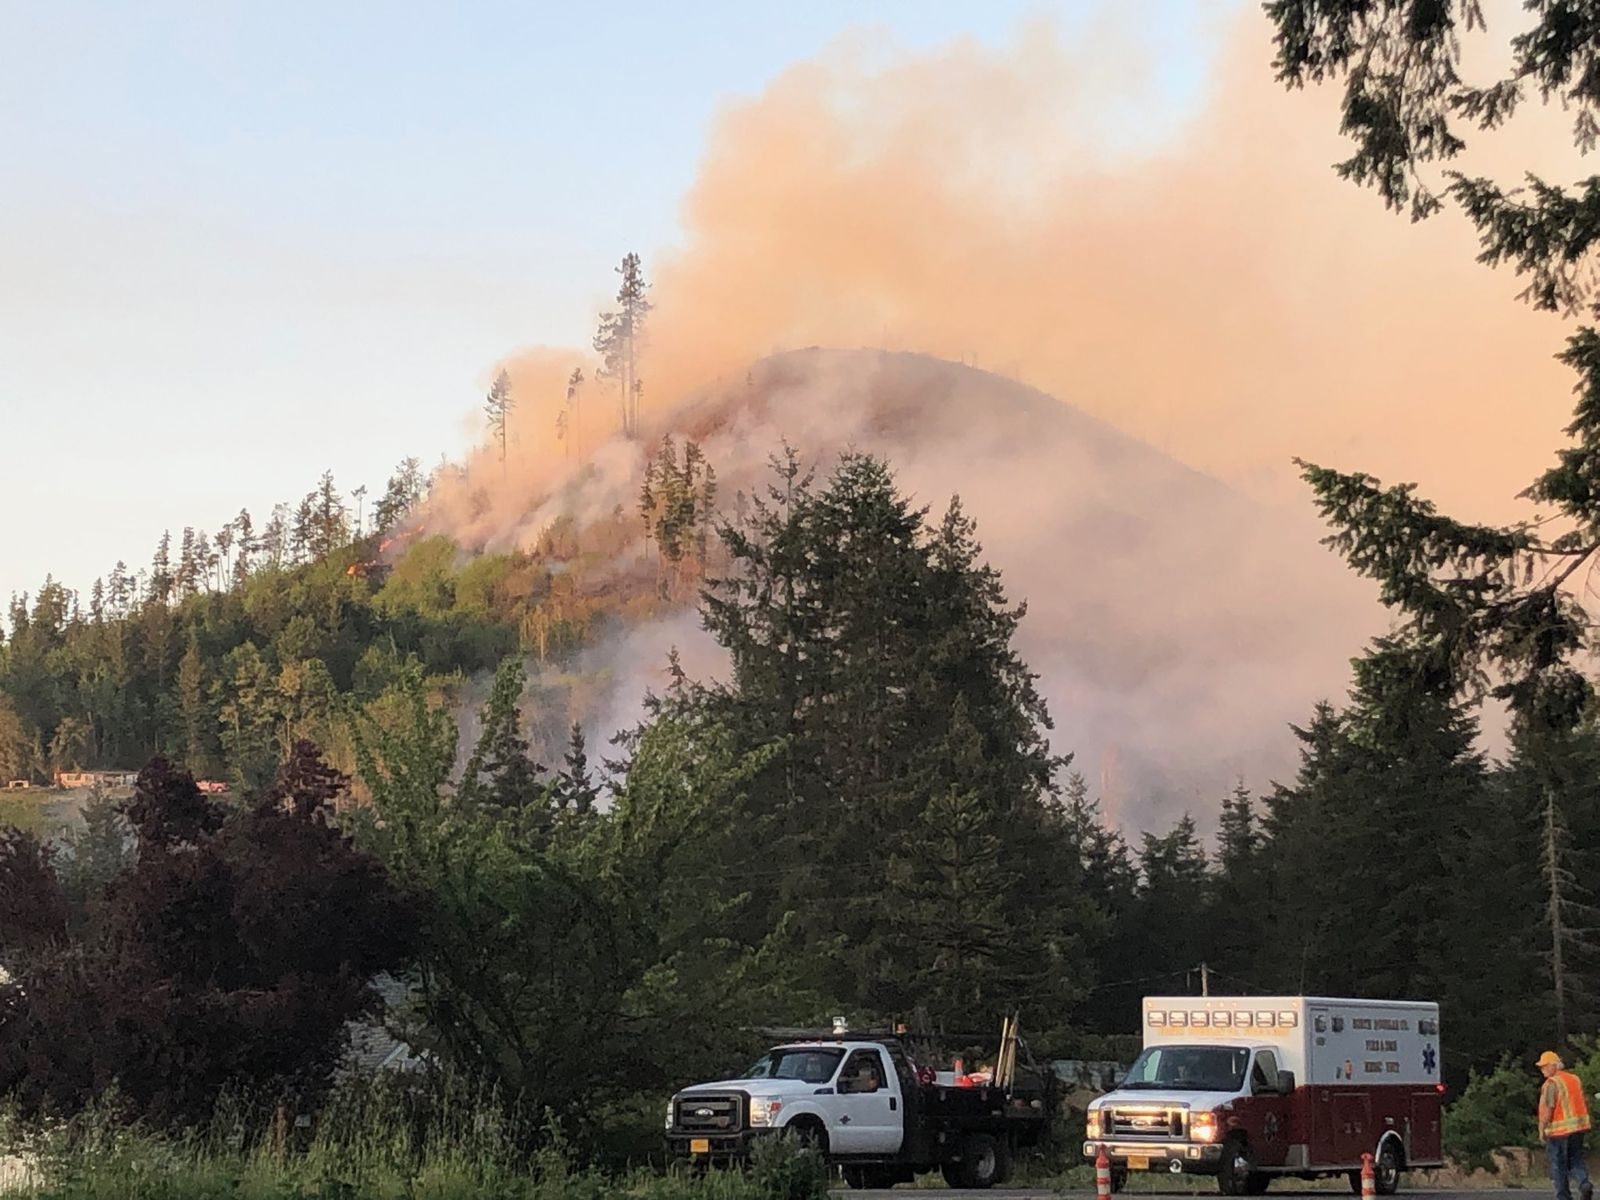 The fire destroyed a home, closed roads and put residents on notice to be ready to evacuate Friday, May 10, 2019. (SBG)